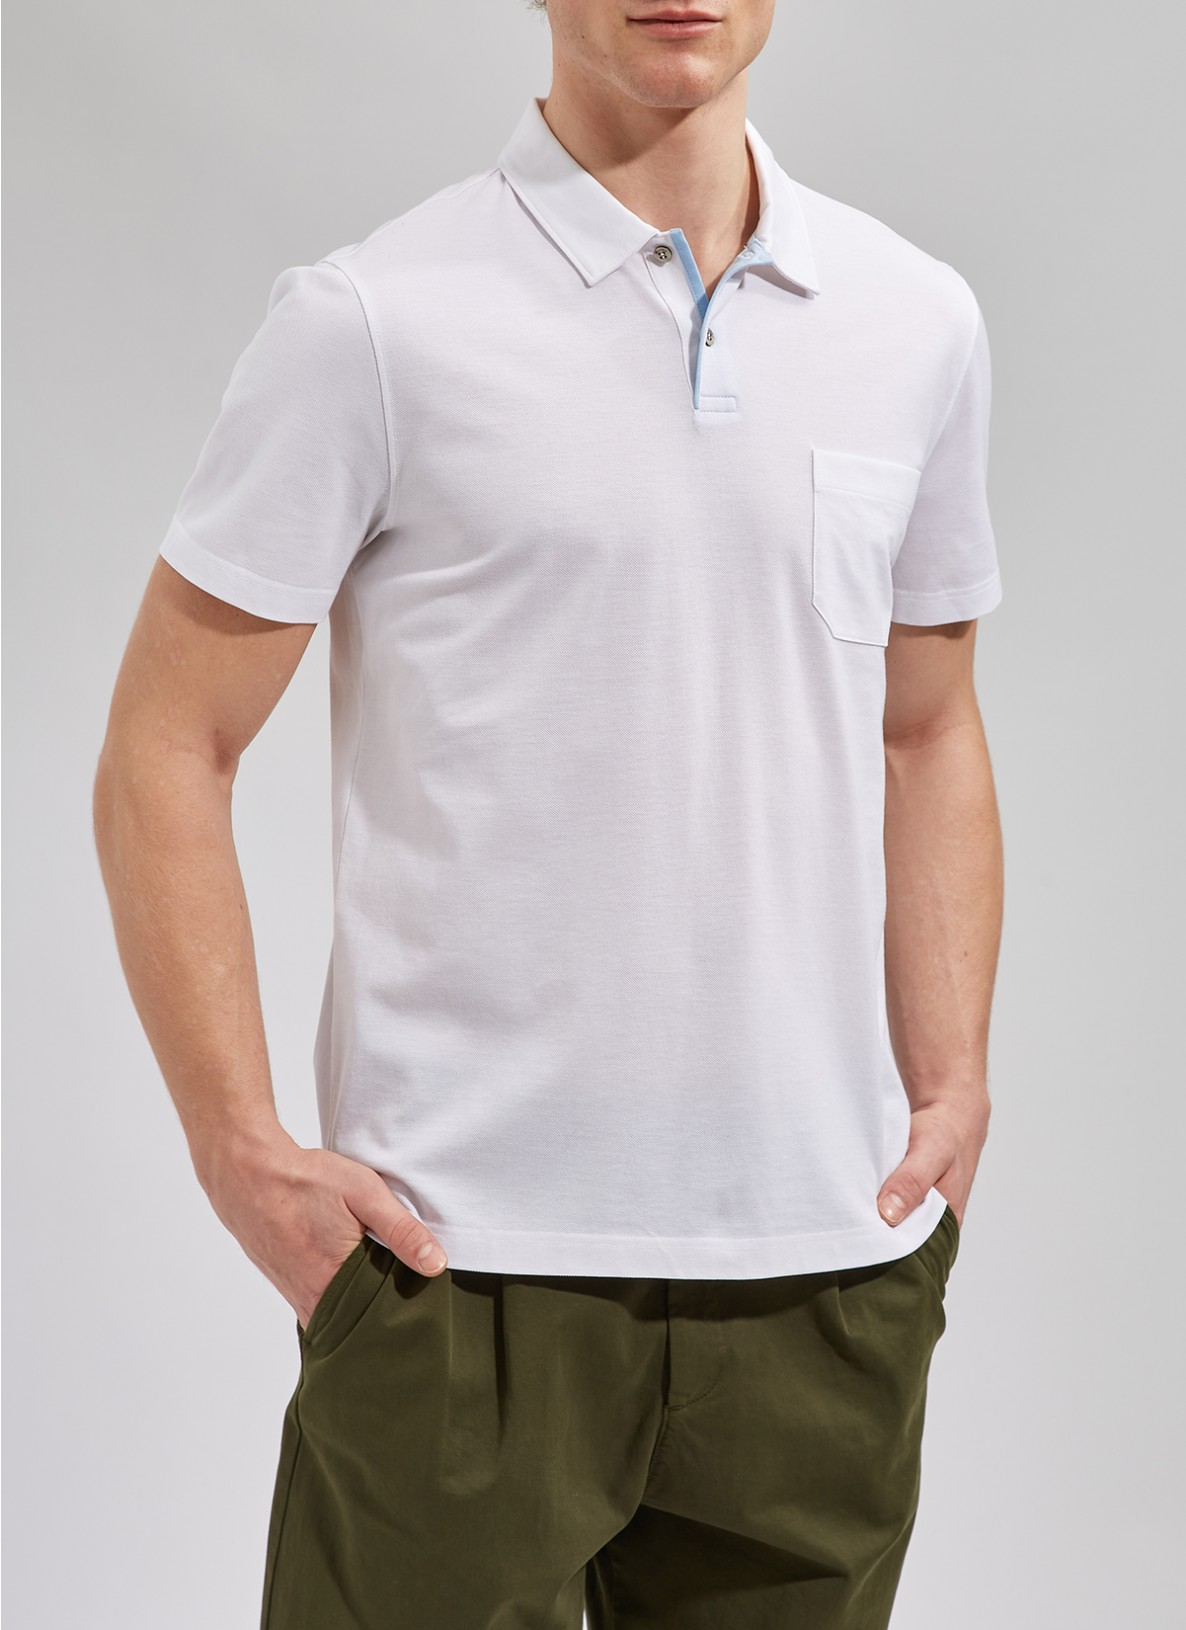 Shirt Polohemd, Knopf 1/2 Arm, Pure WhiteFrontansicht